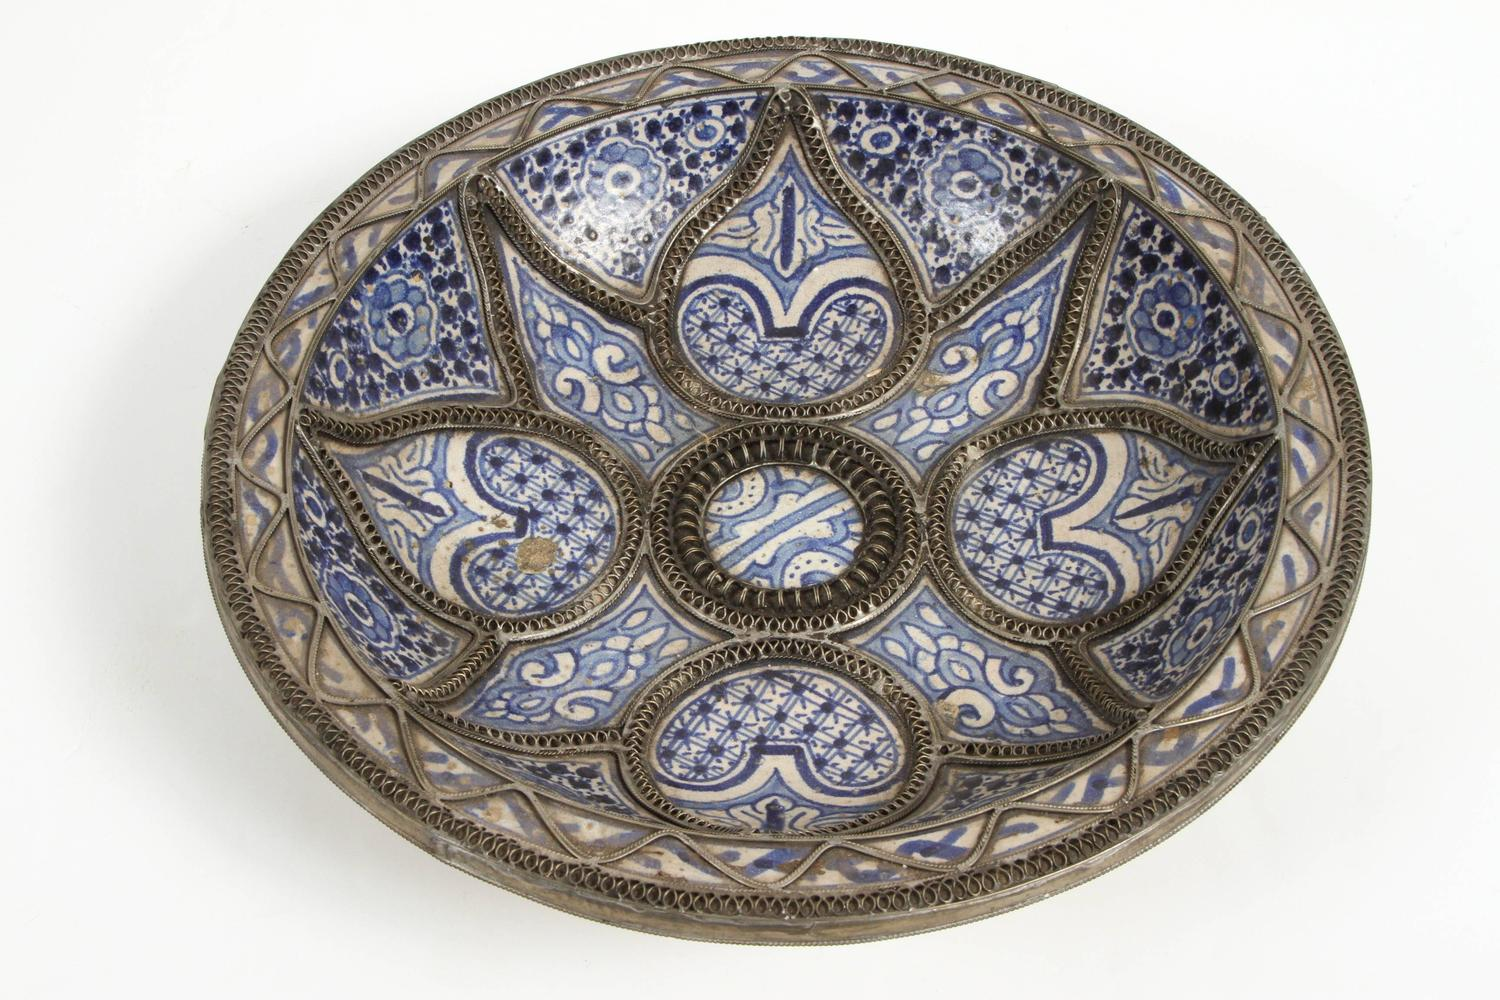 decorative ceramic plates wall mounted large decorative ceramic plates from fez at 1stdibs